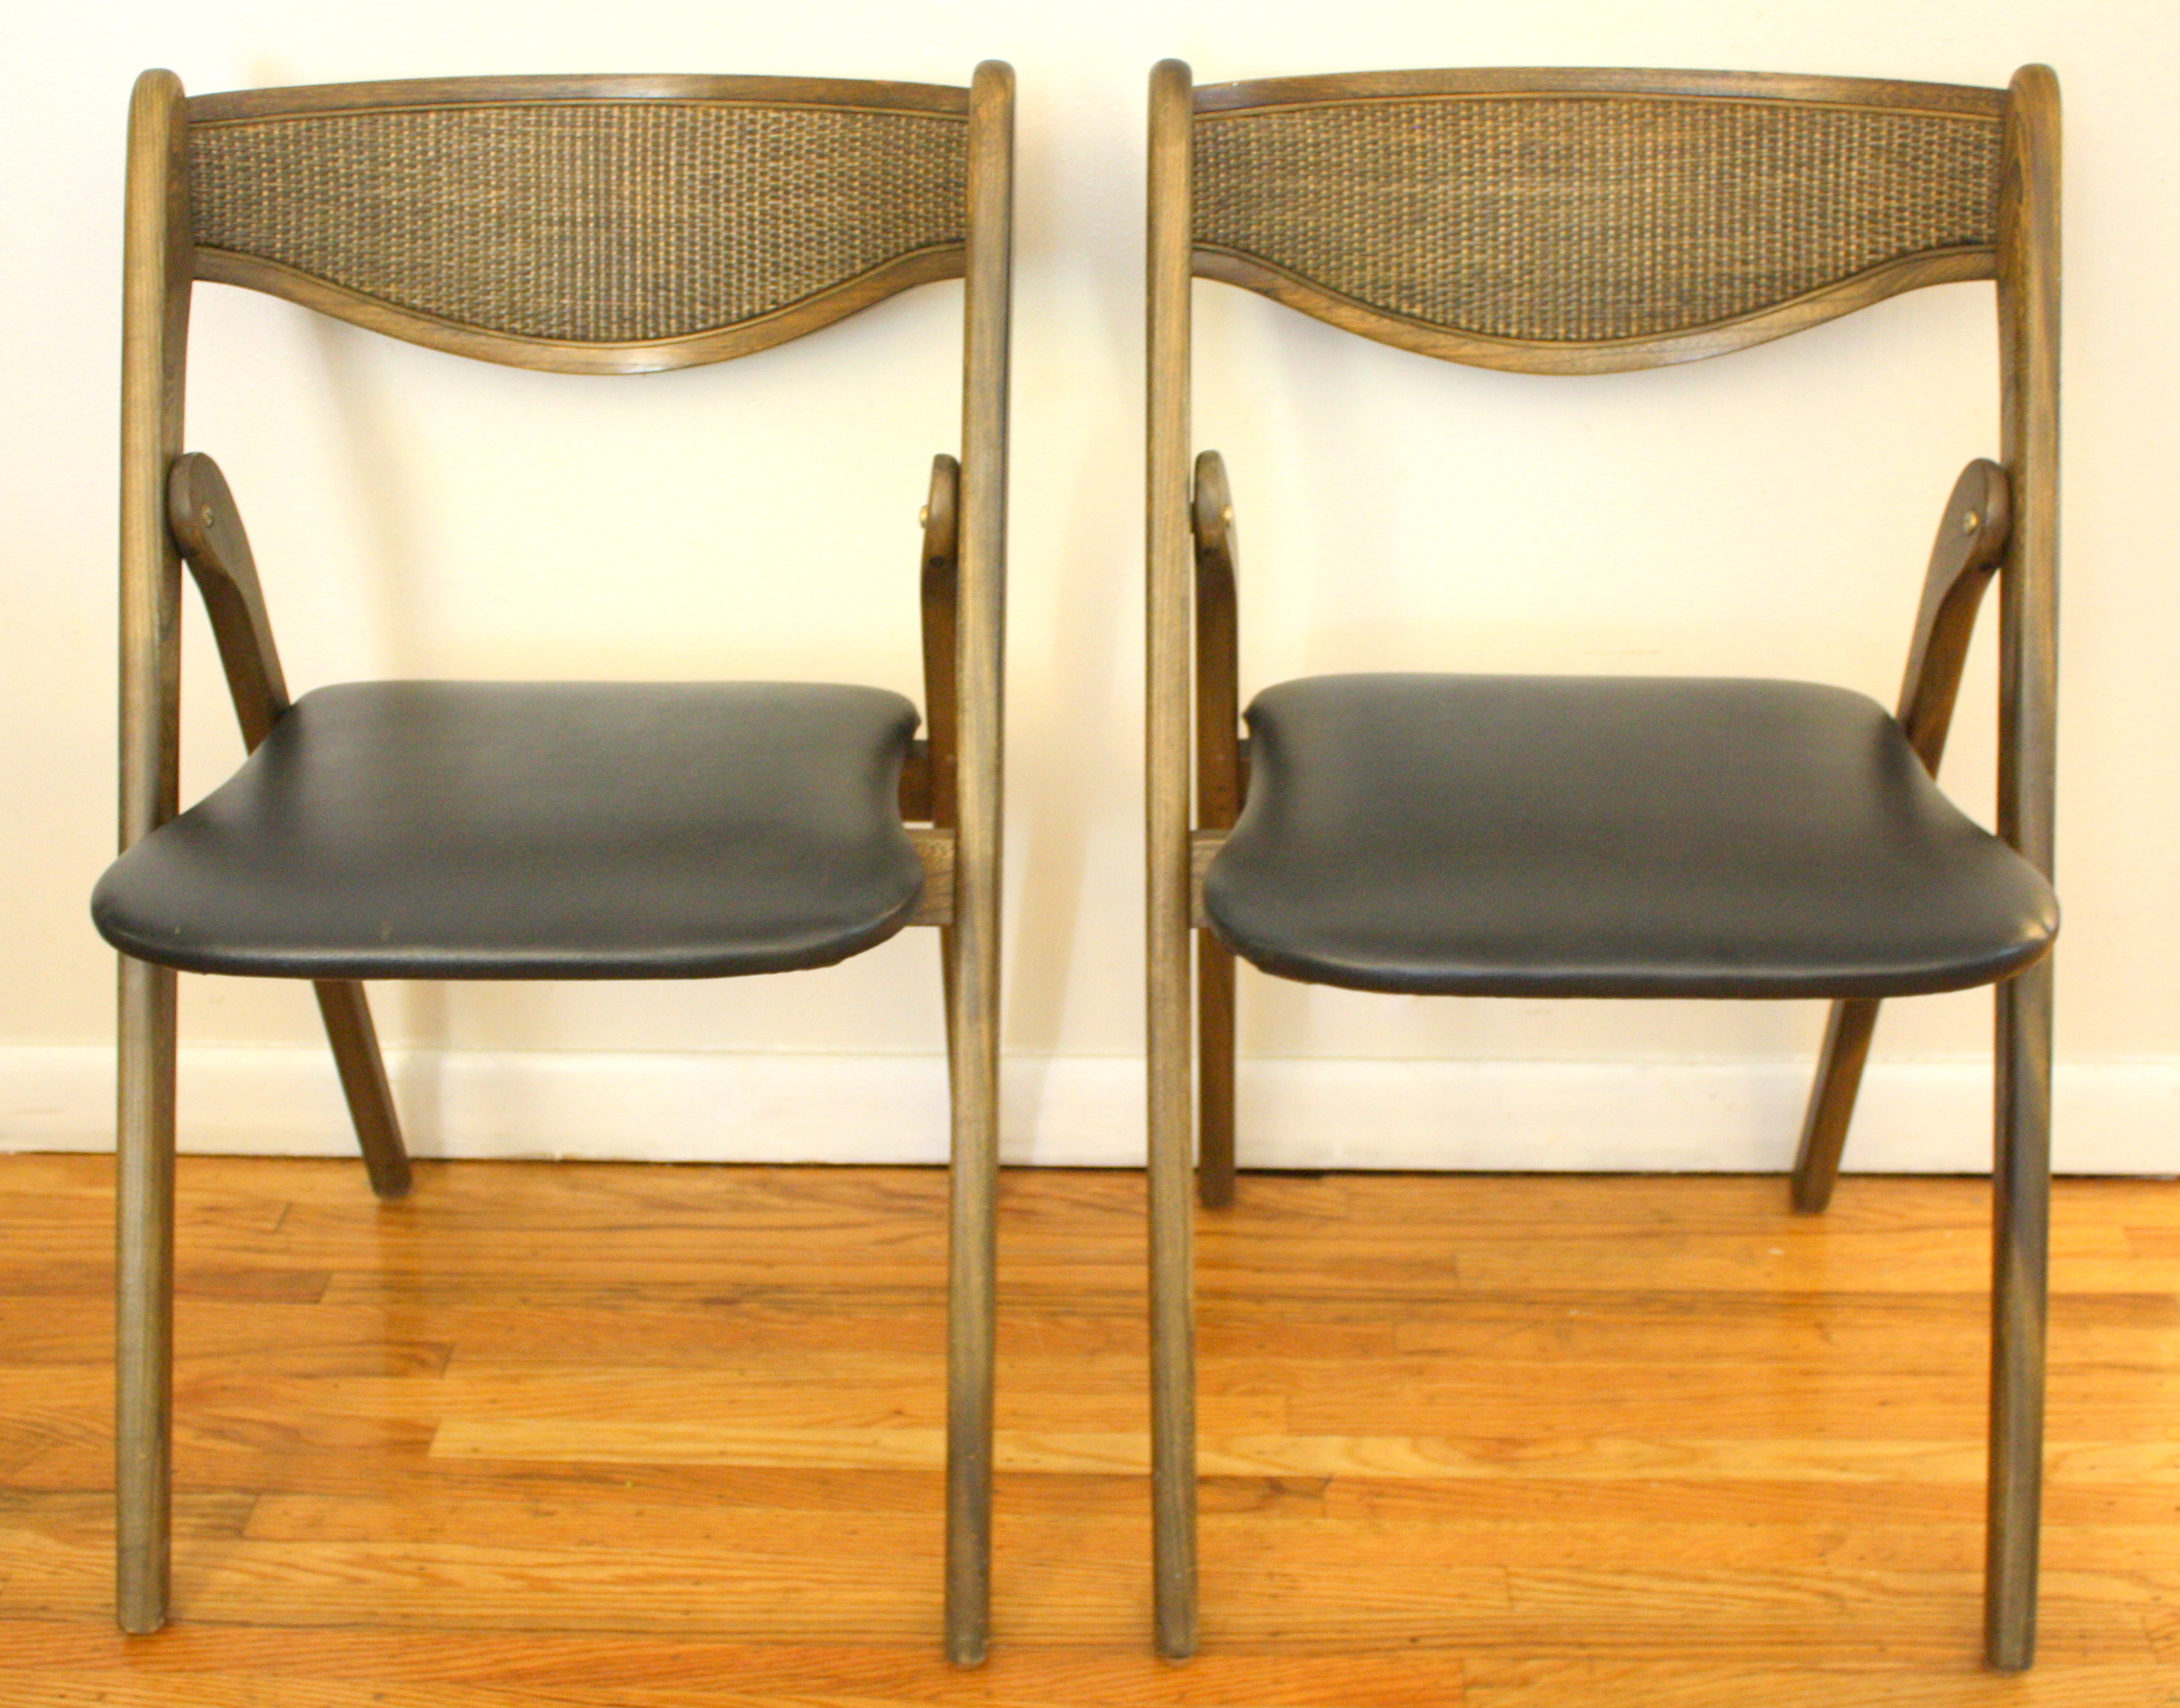 coronet folding chairs table set mid century modern by picked vintage